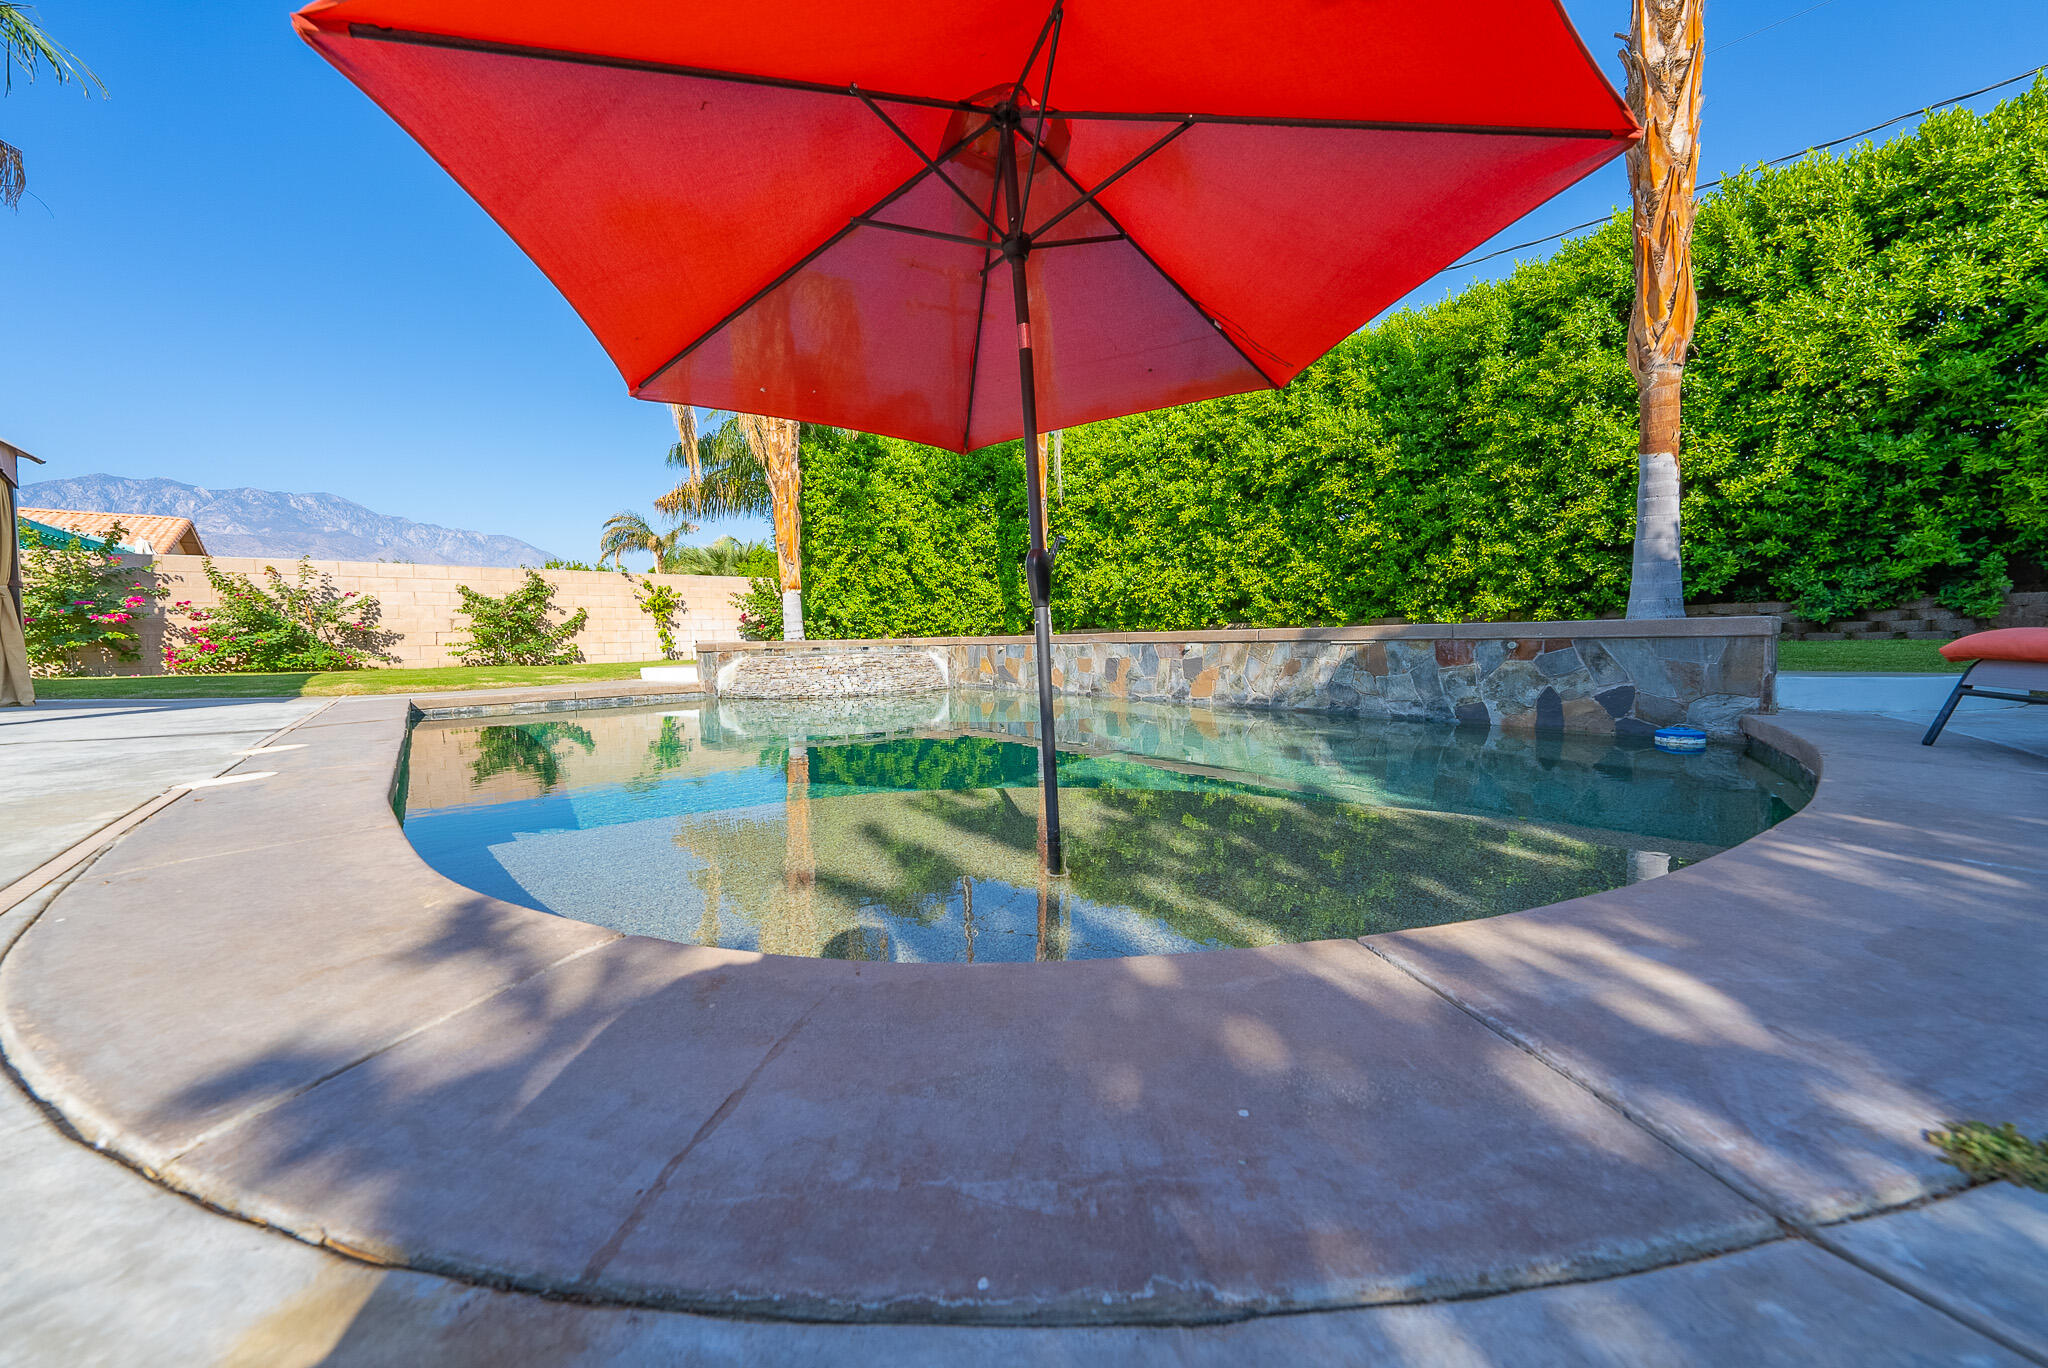 3-Bedroom House In Palm Springs Highlands